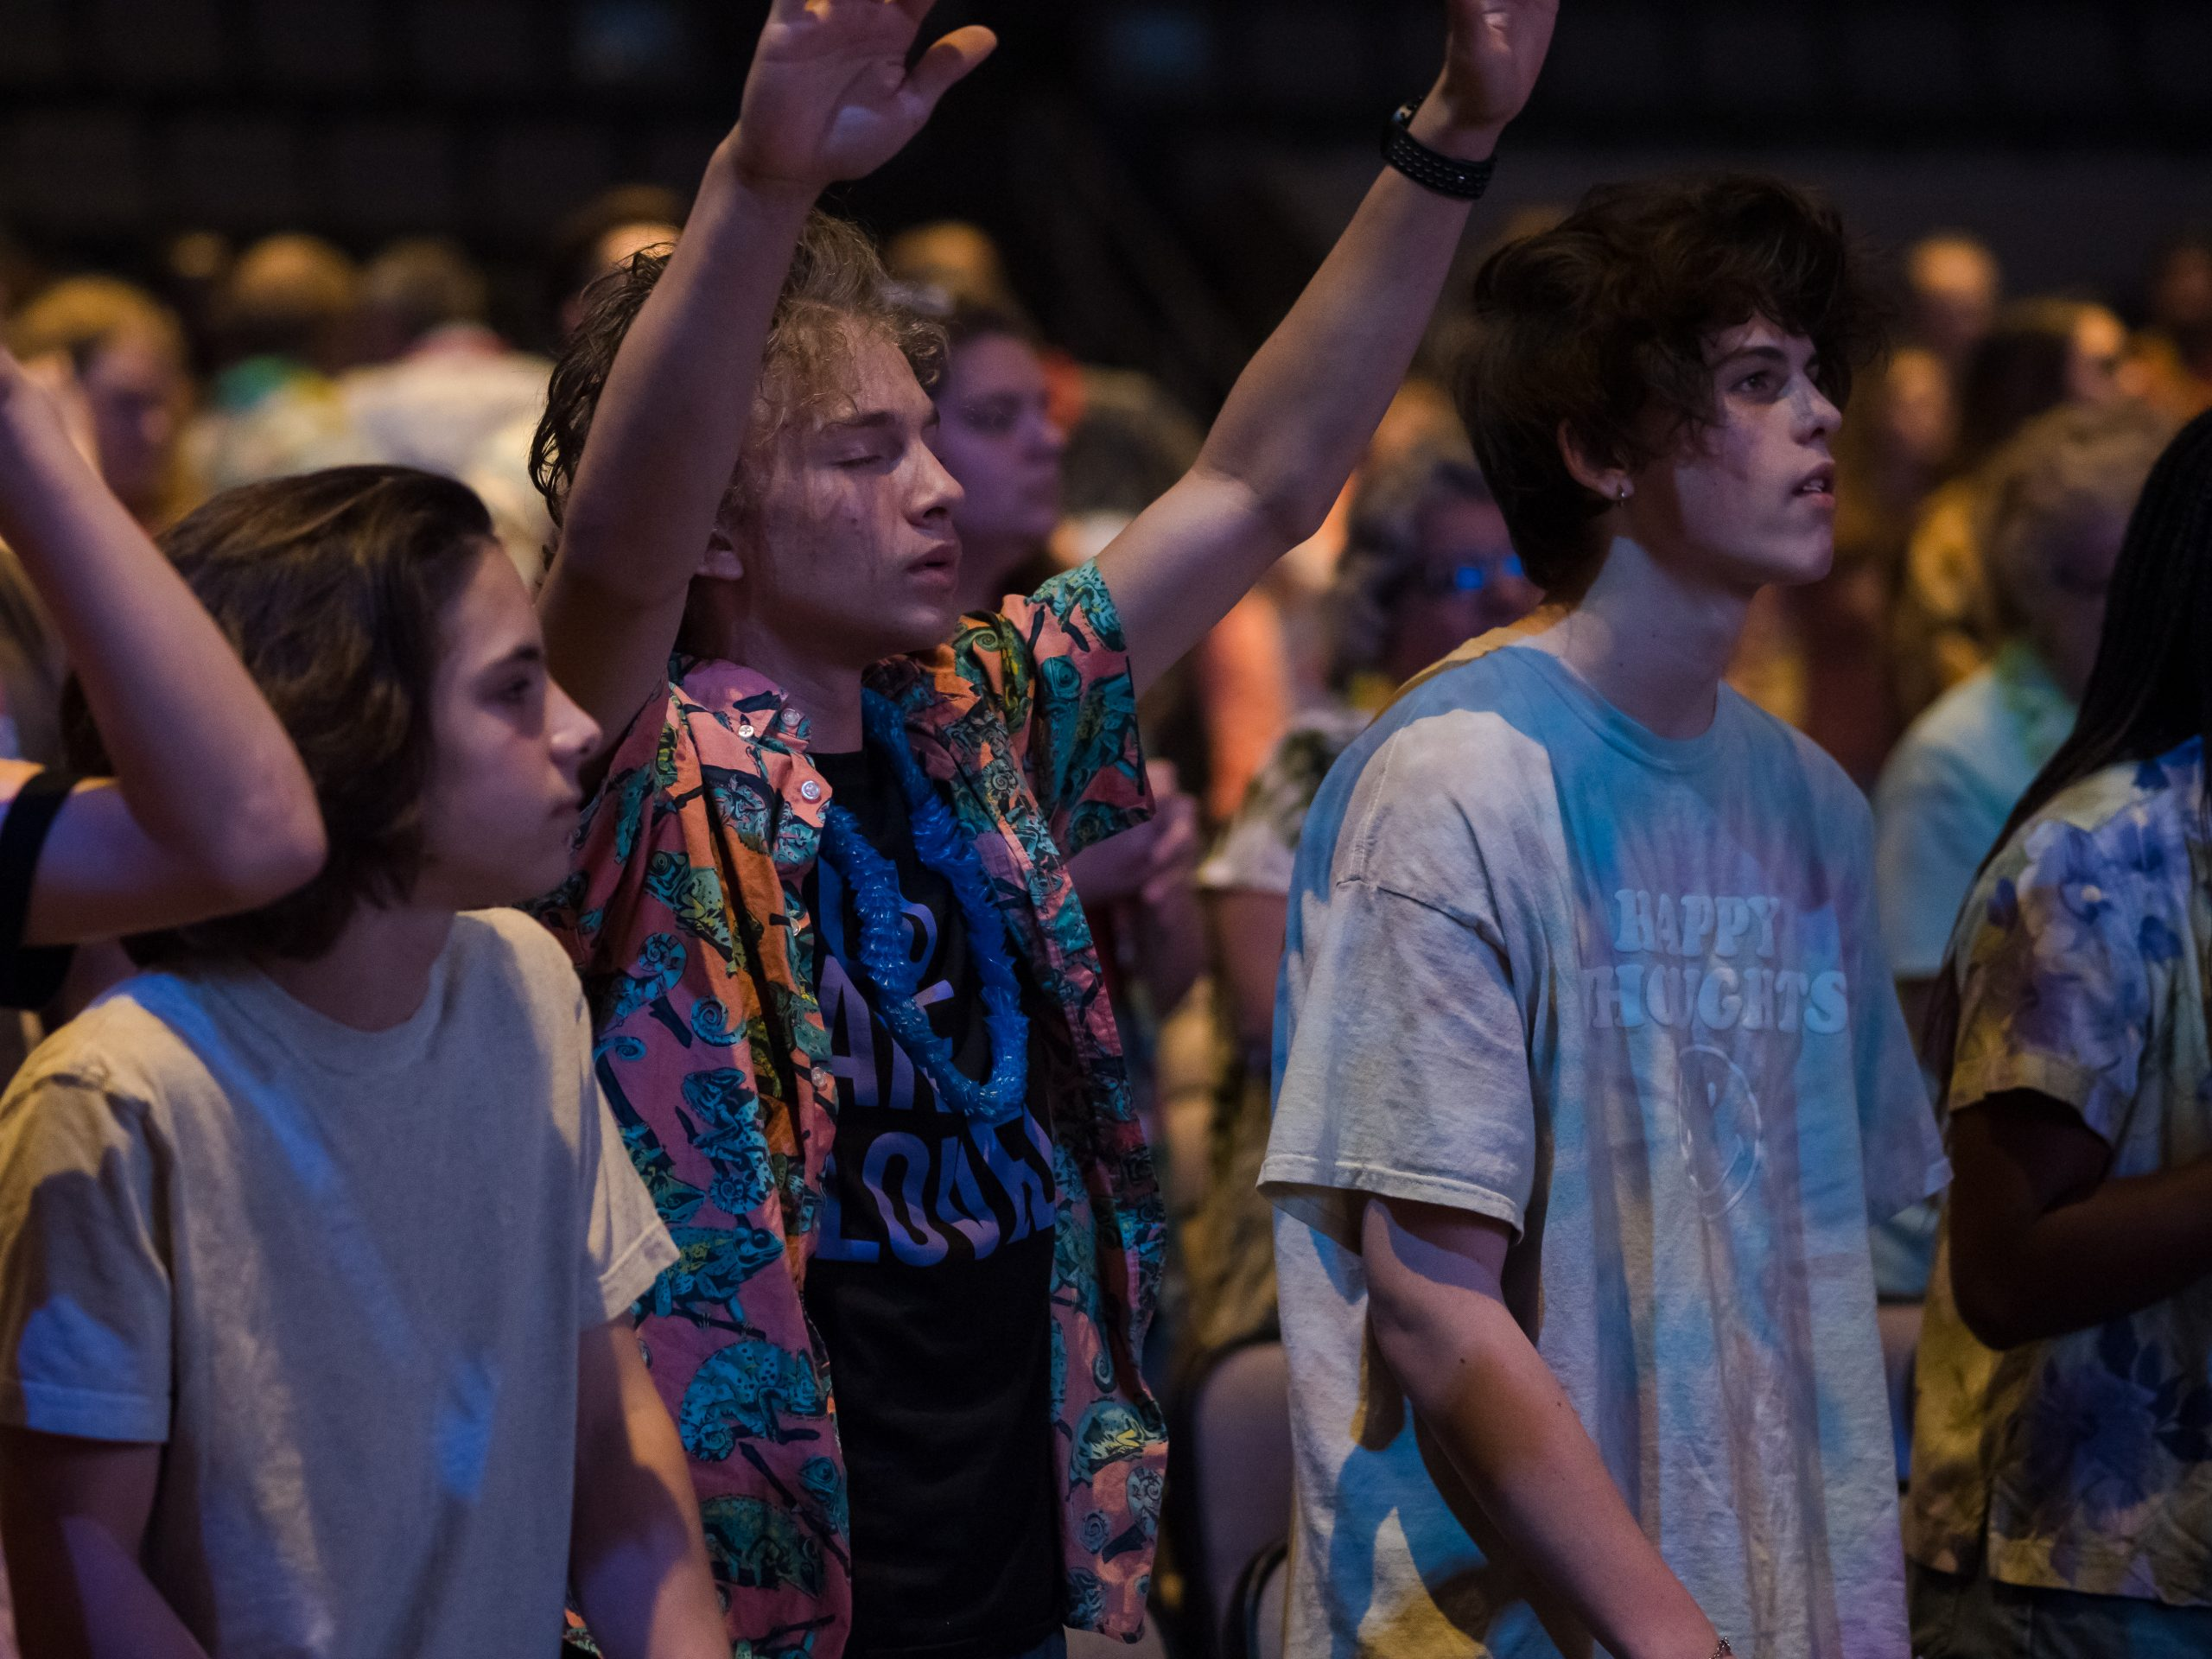 Meadville Dream Team night - people worshipping